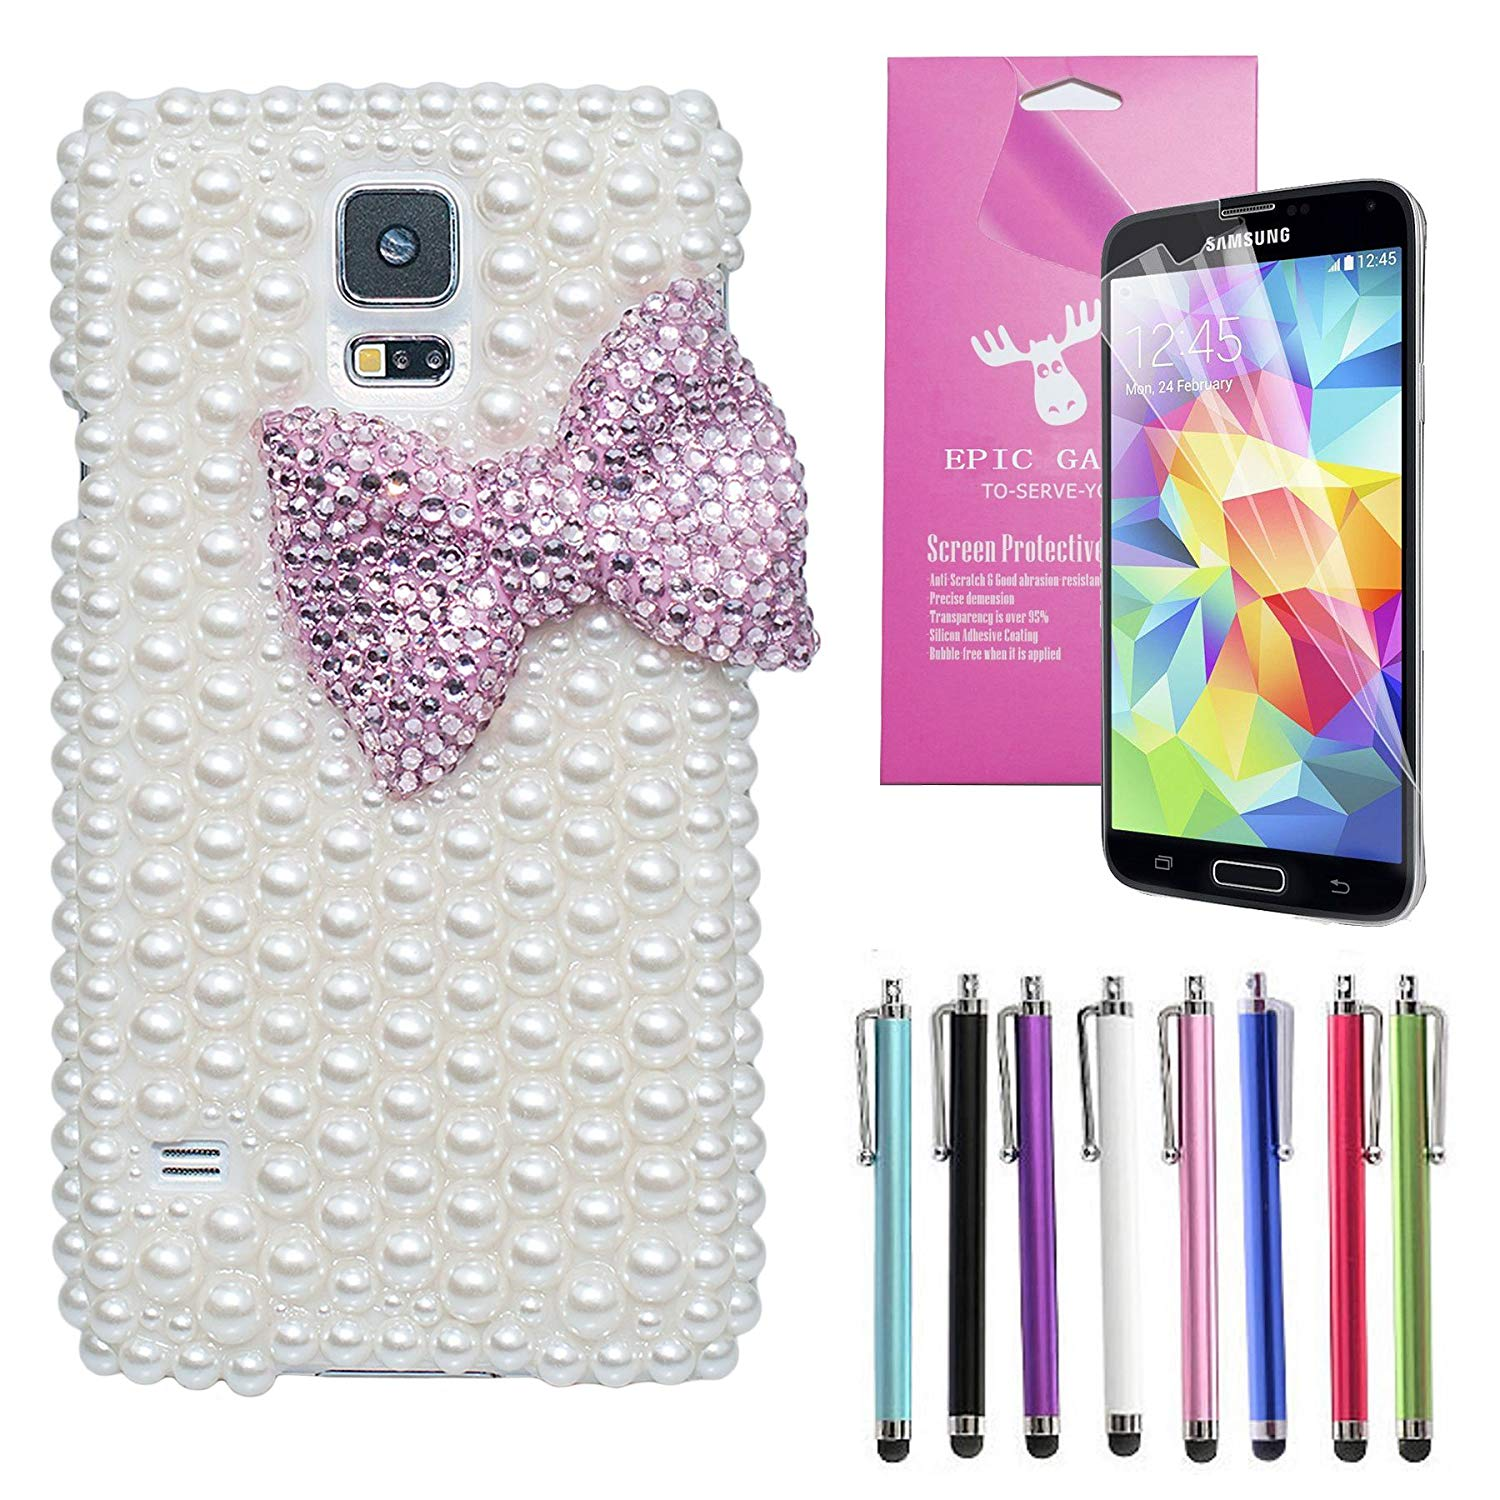 EpicGadget(TM) Luxury Handmade 3D Bling White Pearl Pink Ribbon Bow Knot Case Cover For Samsung Galaxy S5 i9600 + Screen Protector + 1 Stylus (Random Color) (US Seller!!) (Pink Pearl Bow Knot Case)